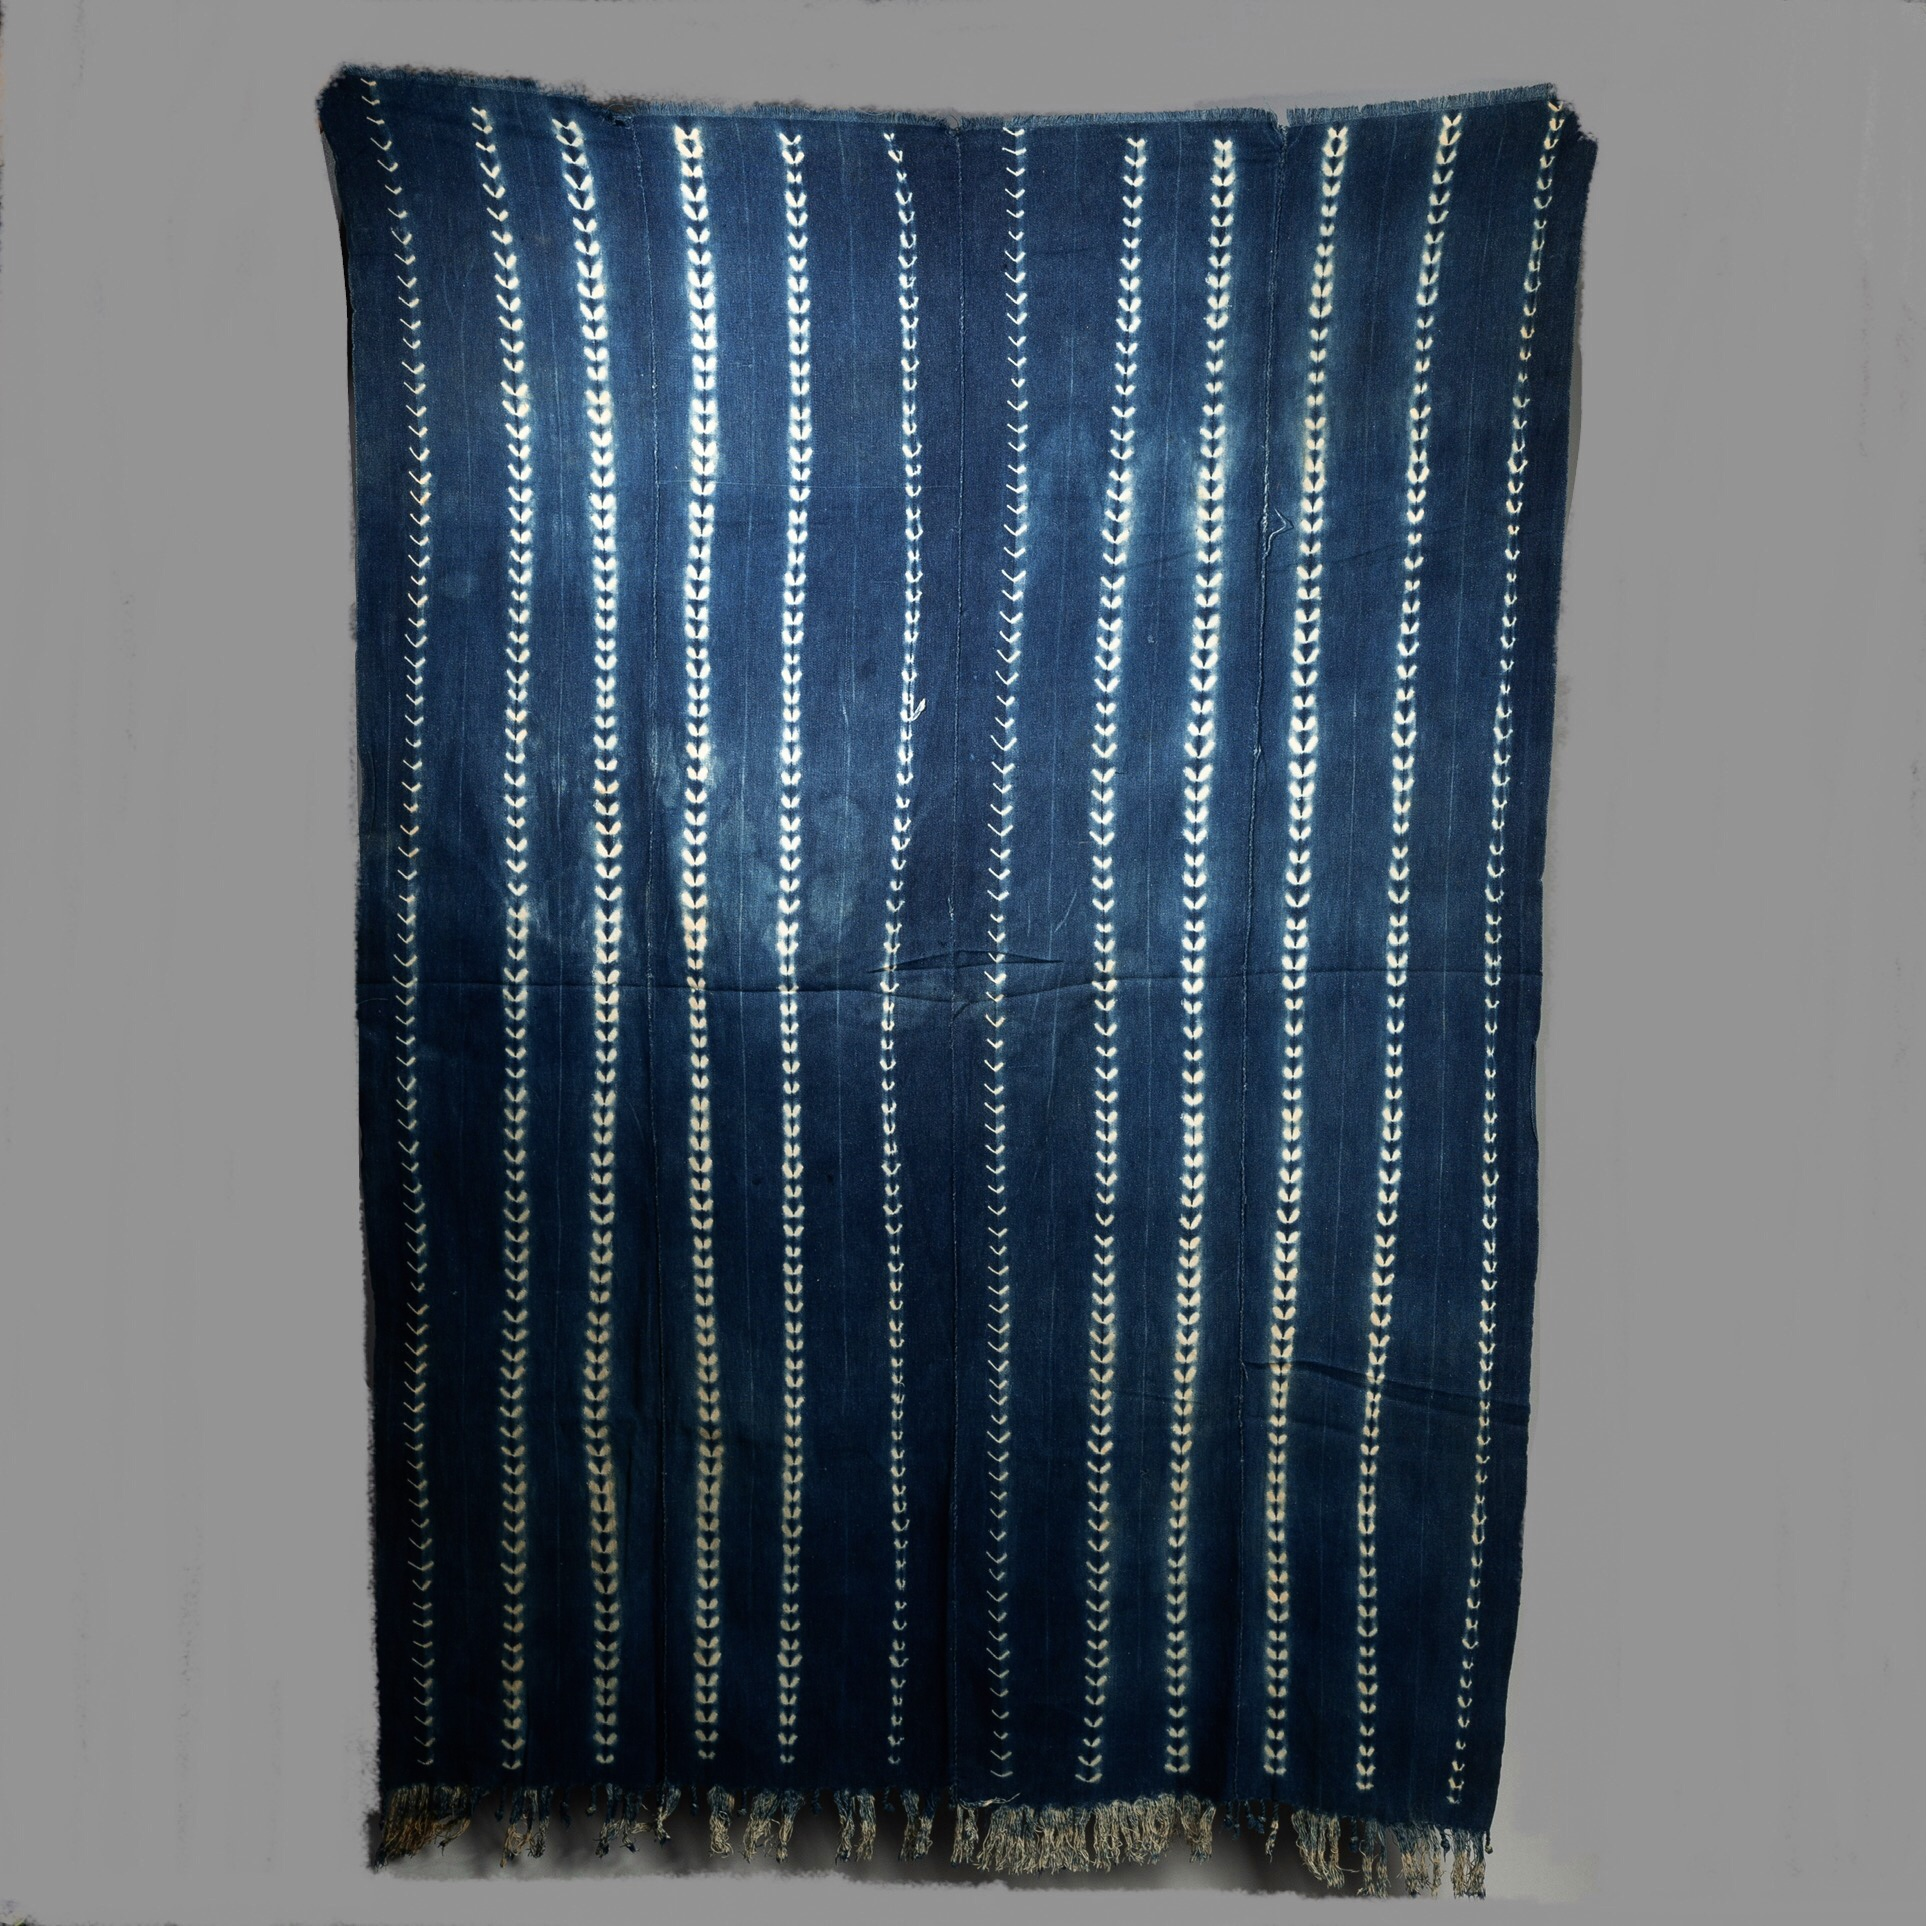 A DELICATELY PATTERNED WOMANS CLOTH, MOSSI TRIBE BURKINA FASO ( No 3248 )